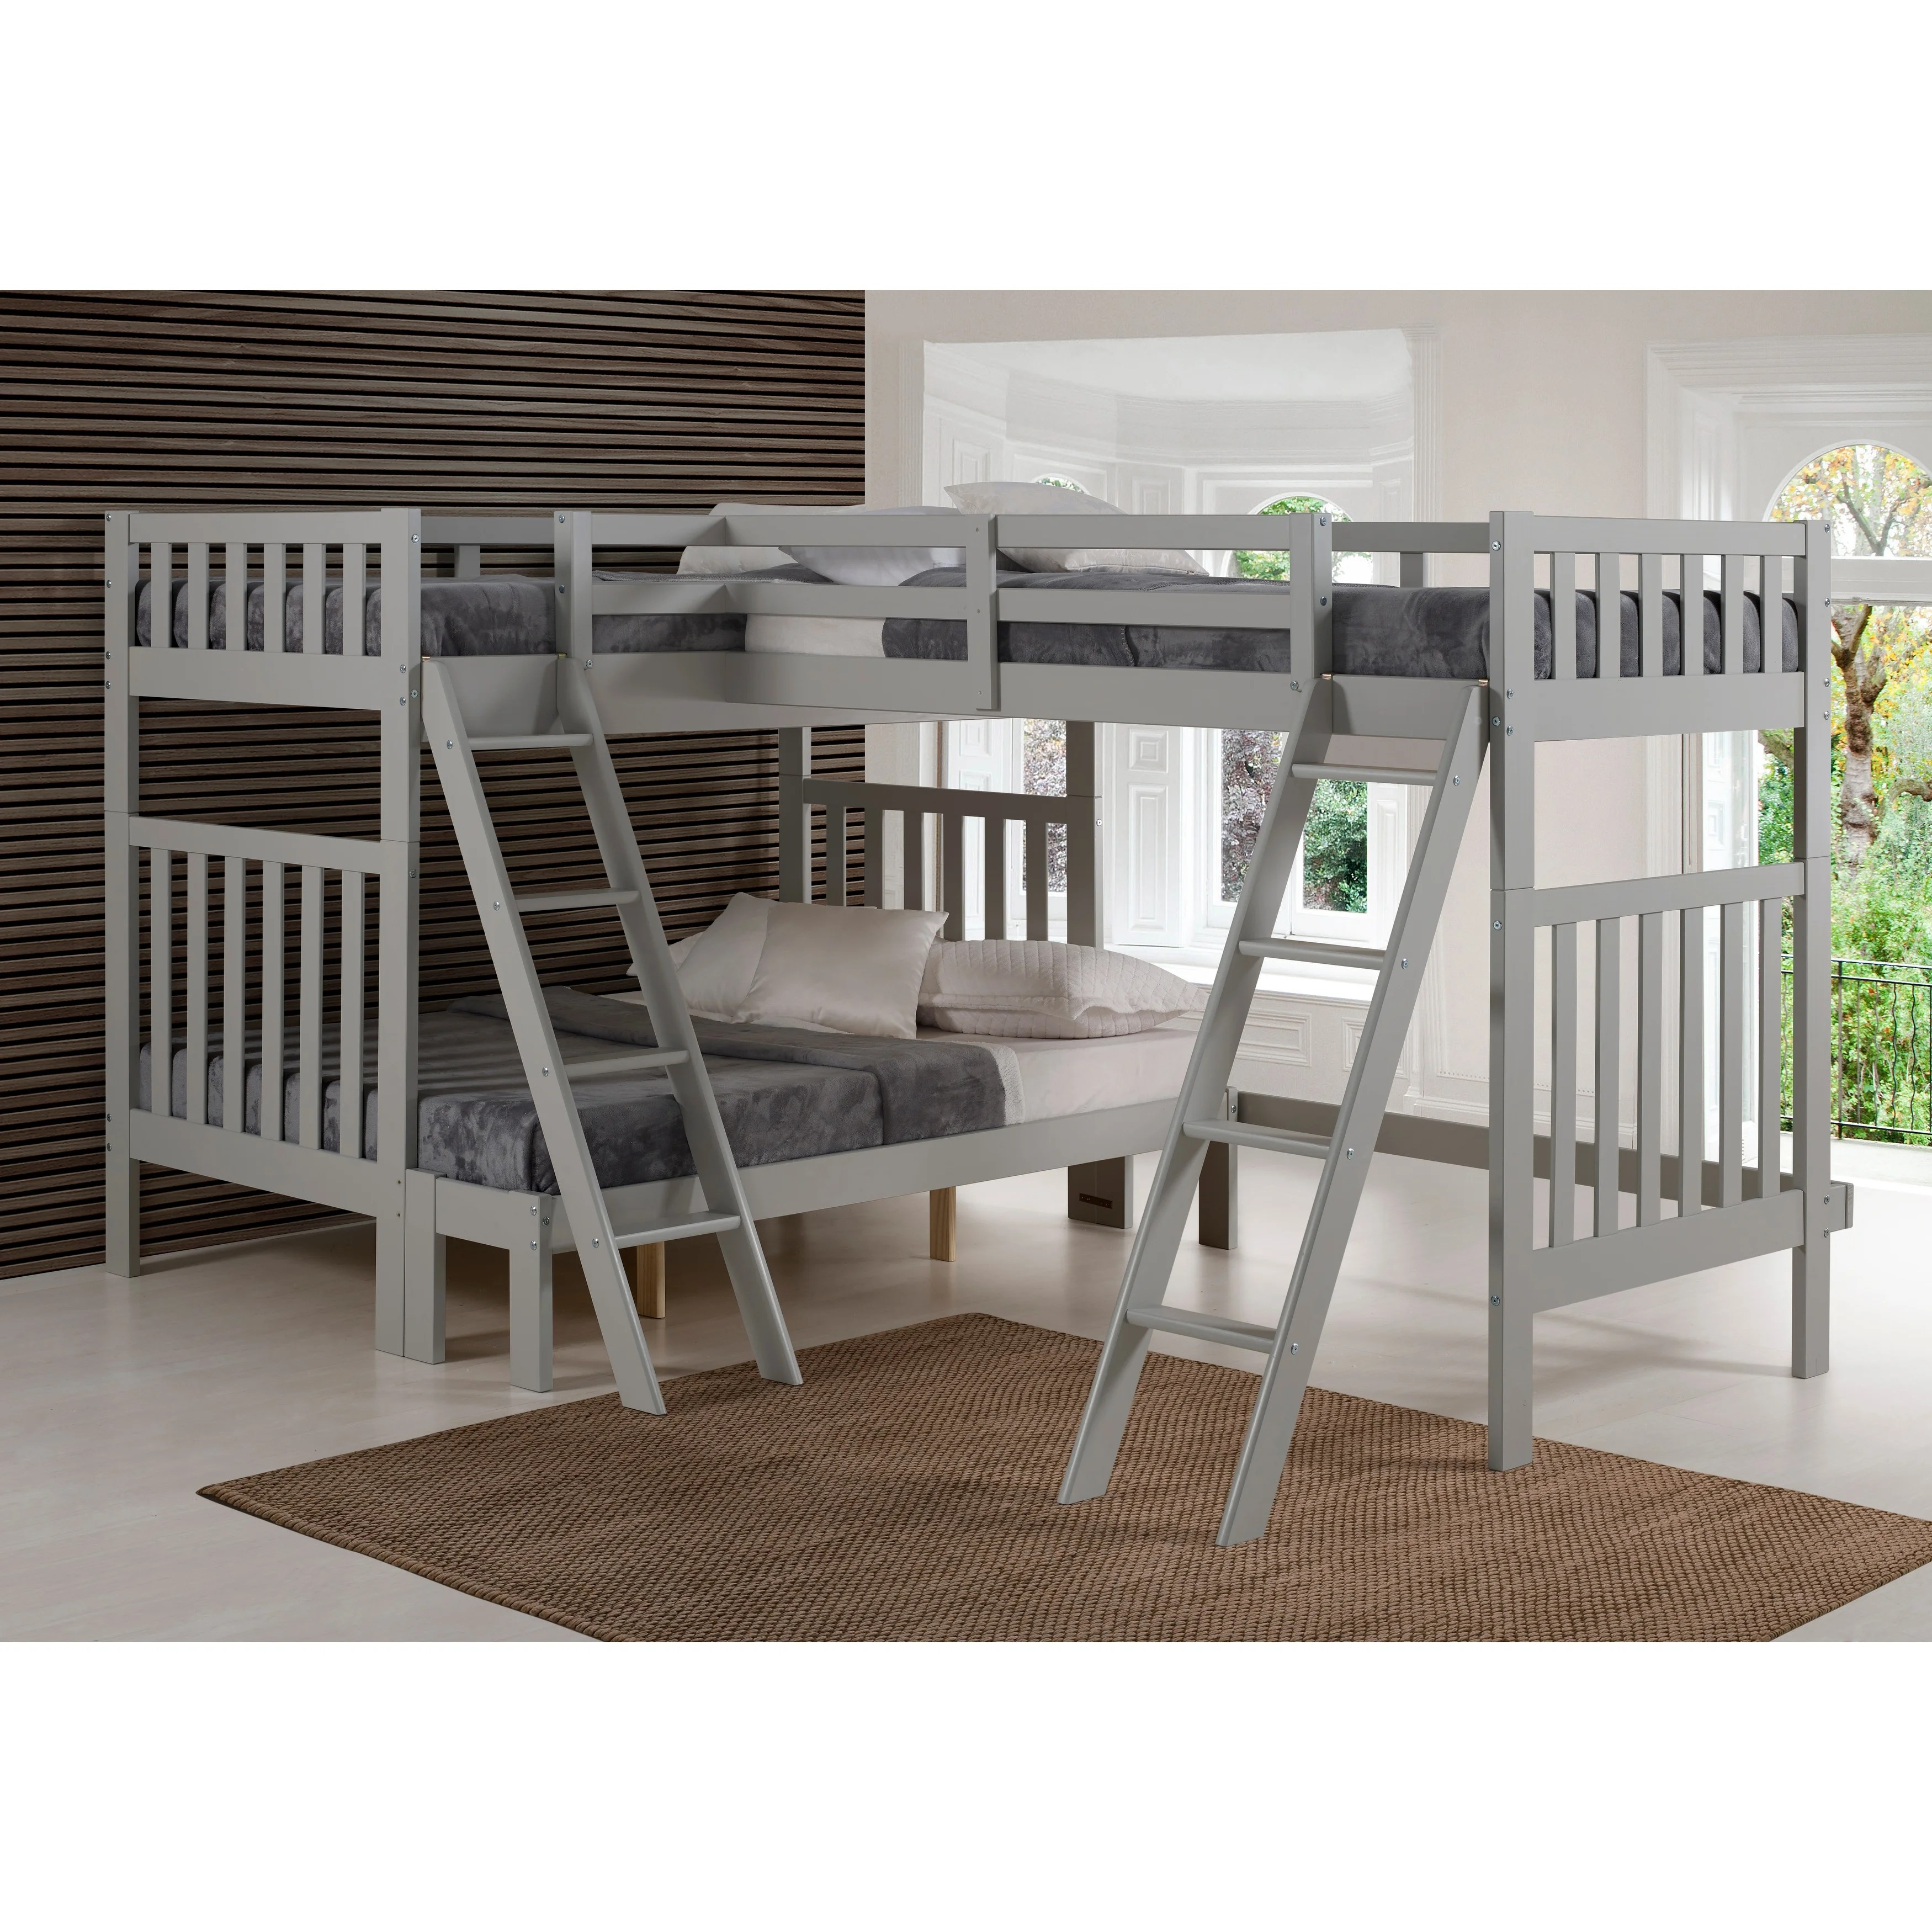 Aurora Solid Wood Twin Over Full Bunk Bed With Tri Bunk Extension Overstock 22406188